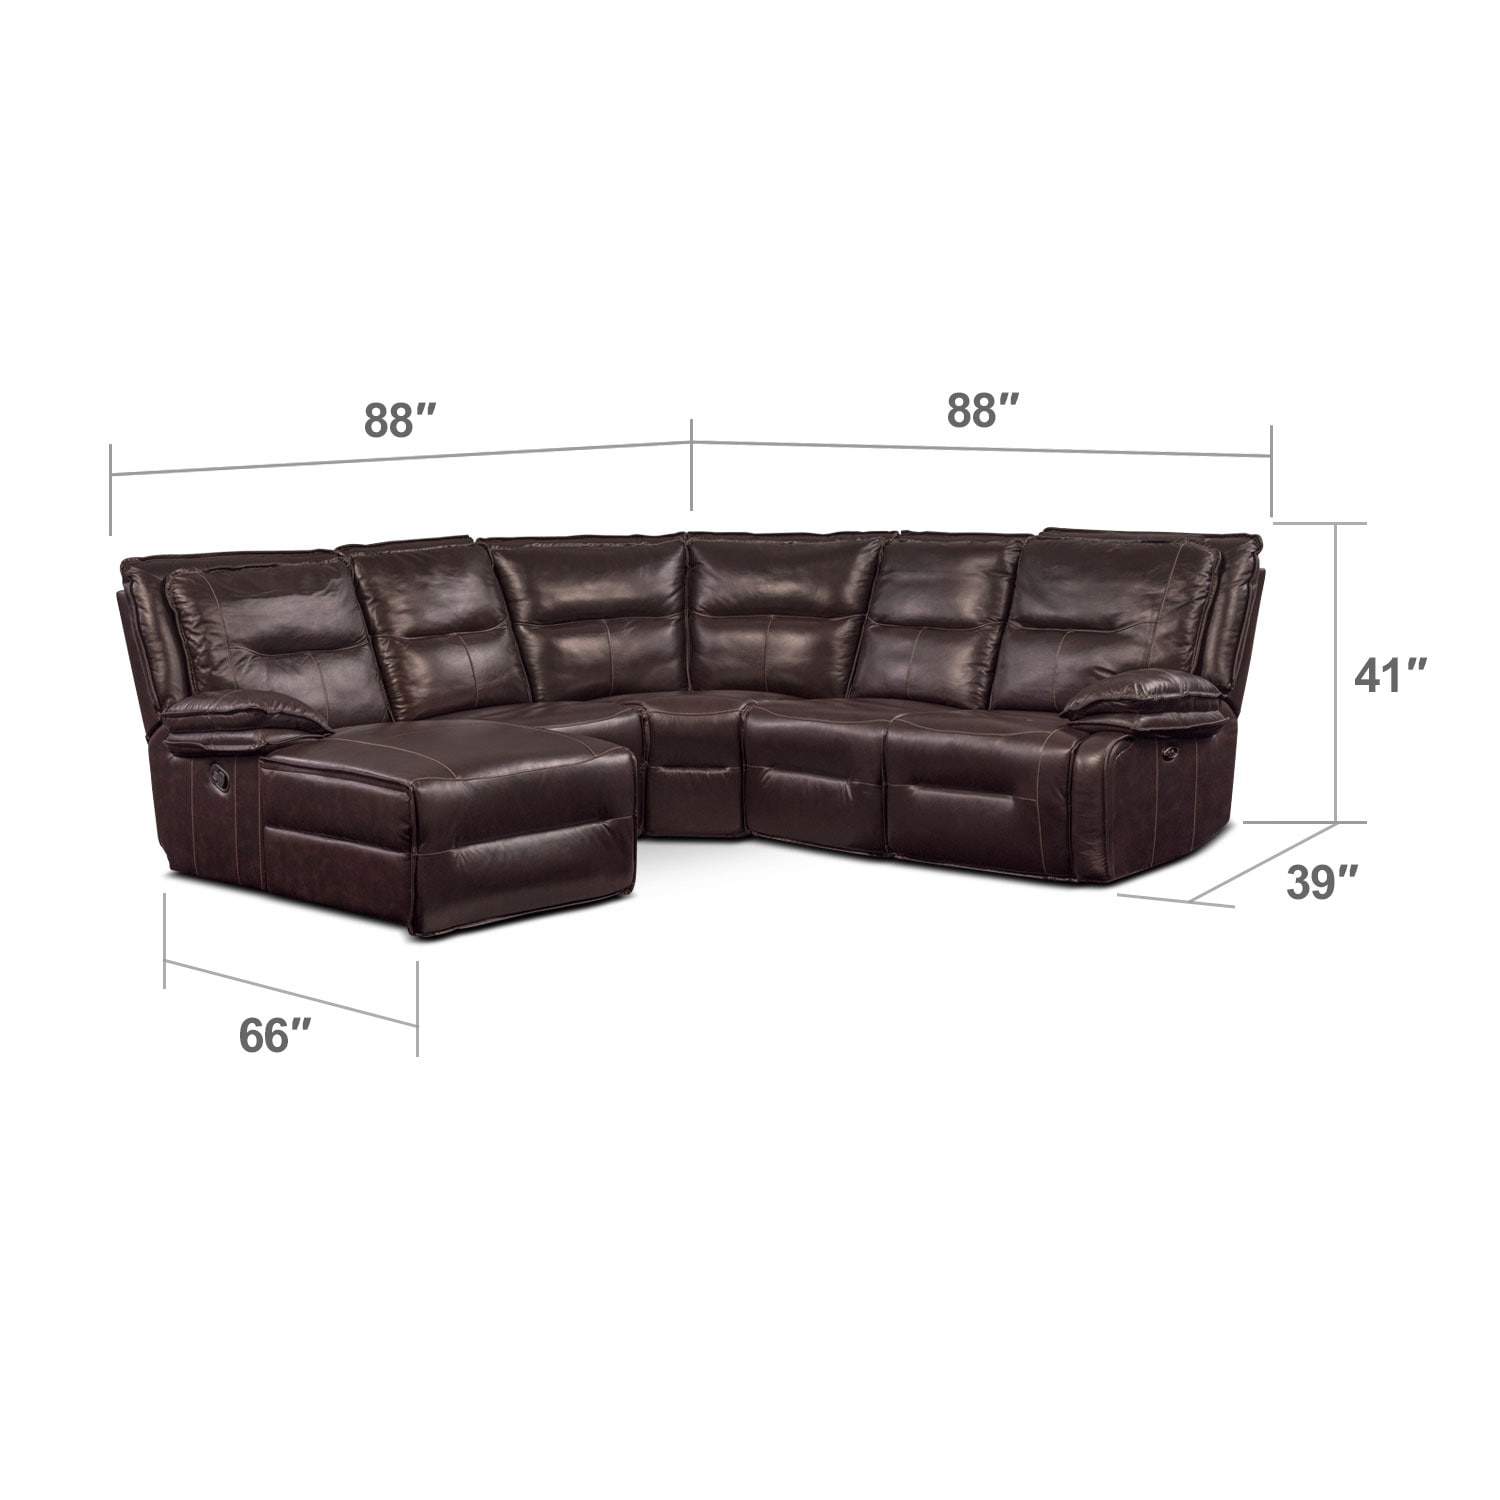 Living Room Furniture - Nikki 5-Piece Power Reclining Sectional with 2 Recliners and Left-Facing Chaise - Brown